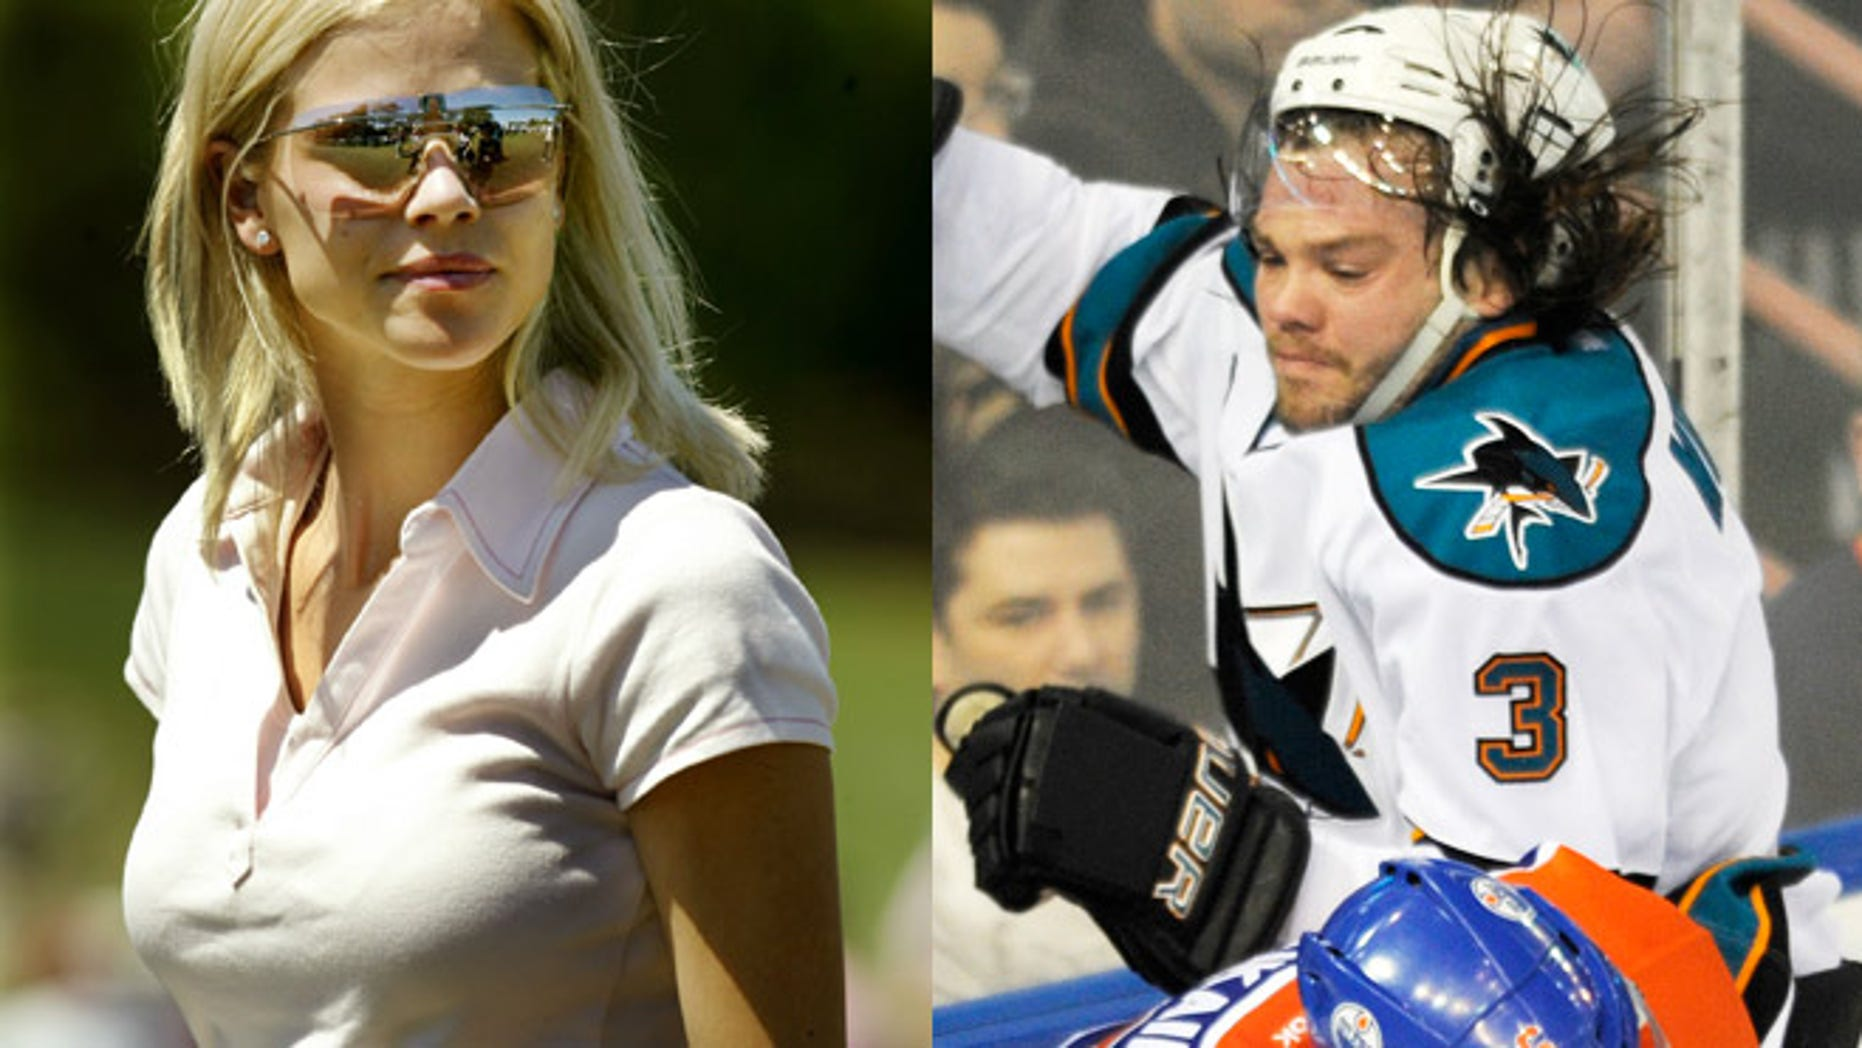 swedish nhl player douglas murray says reports he is